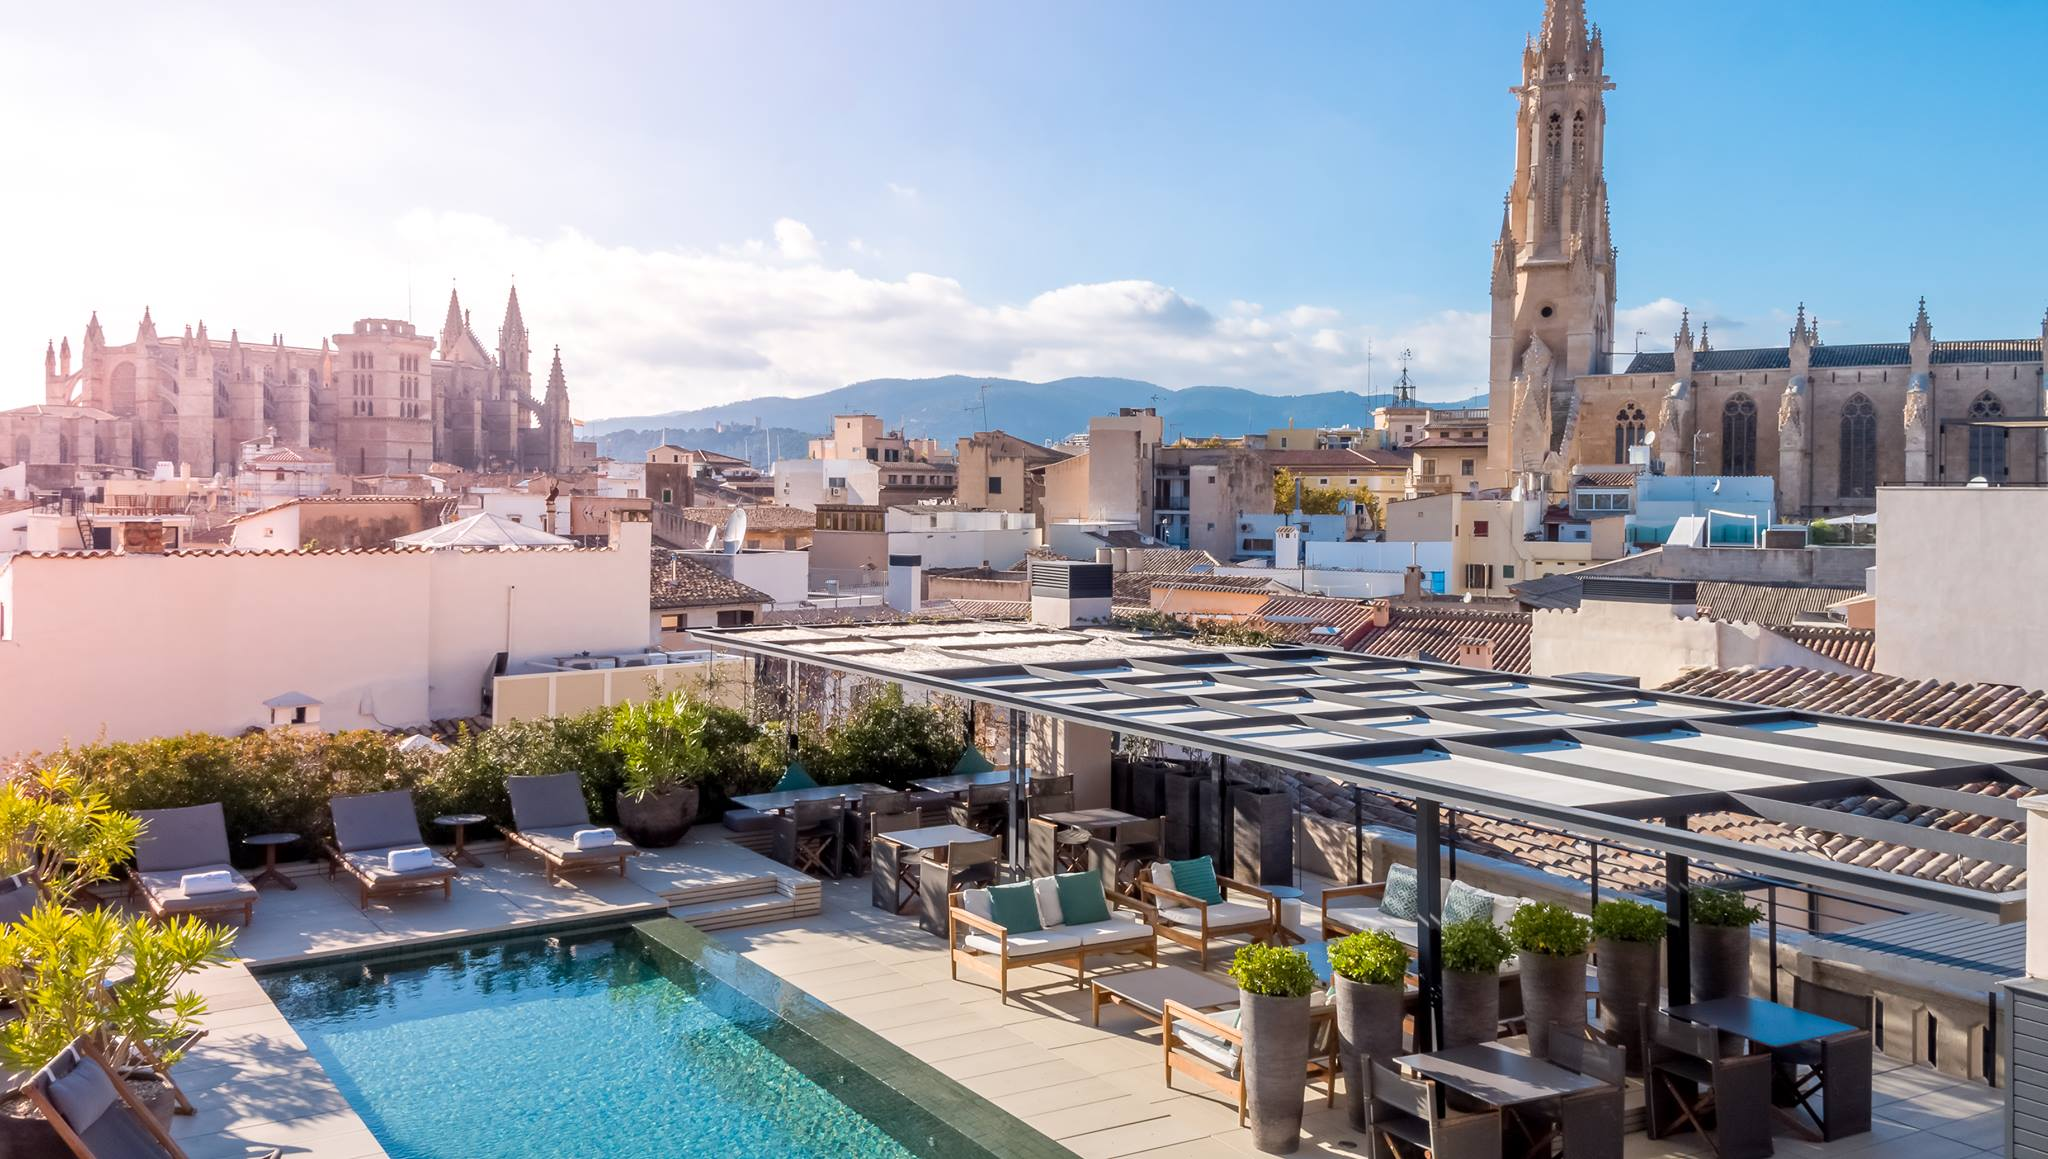 6 reasons to escape to Palma this winter 2019/20